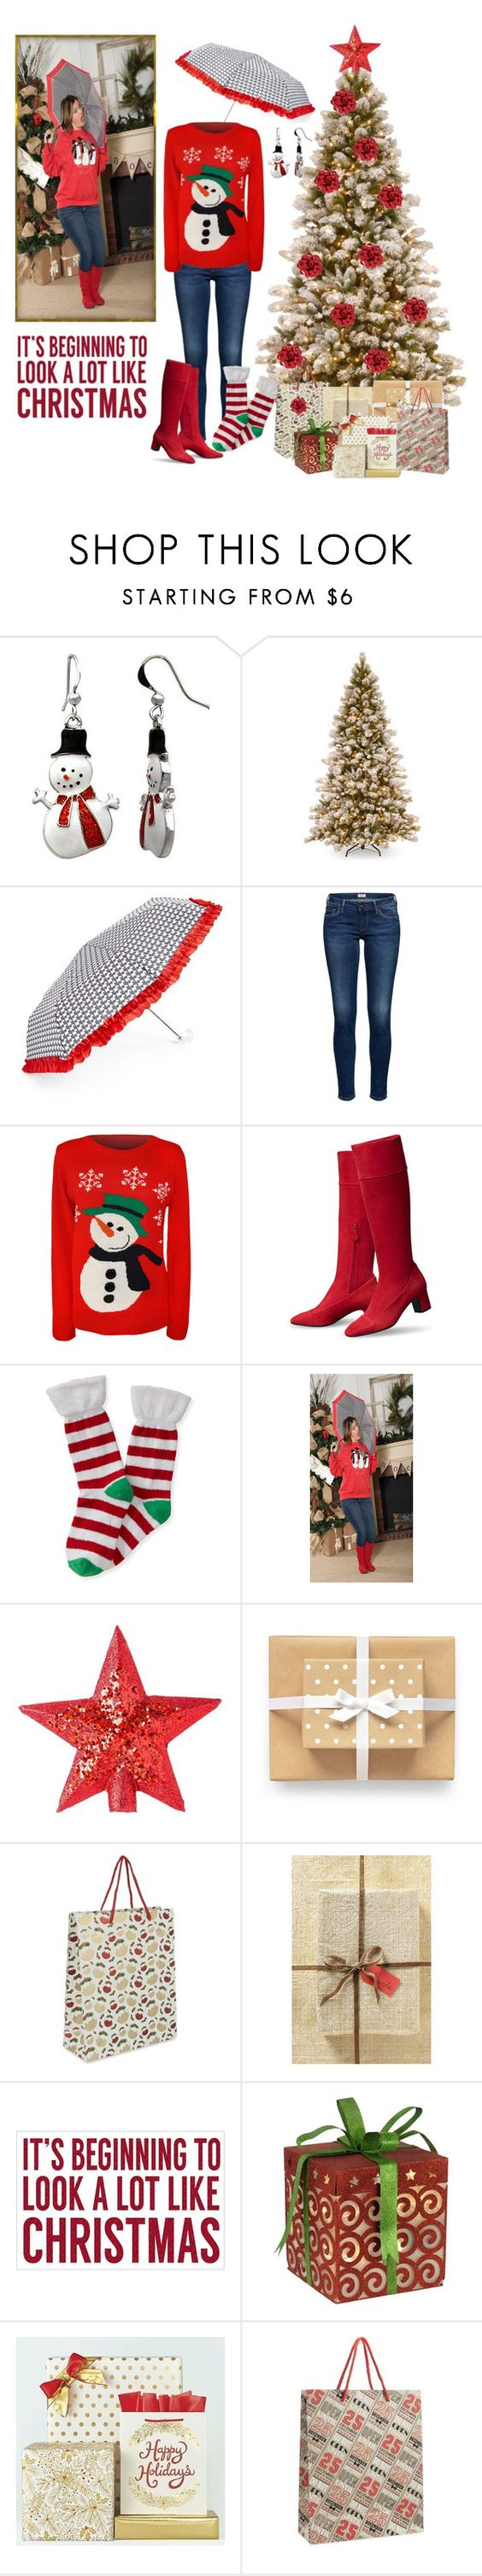 """""""Casual Christmas attire"""" by haz94styles ❤ liked on Polyvore featuring Kim Rogers, Tri-coastal Design, WearAll, Aéropostale, Vivid Wrap and Sixtrees"""